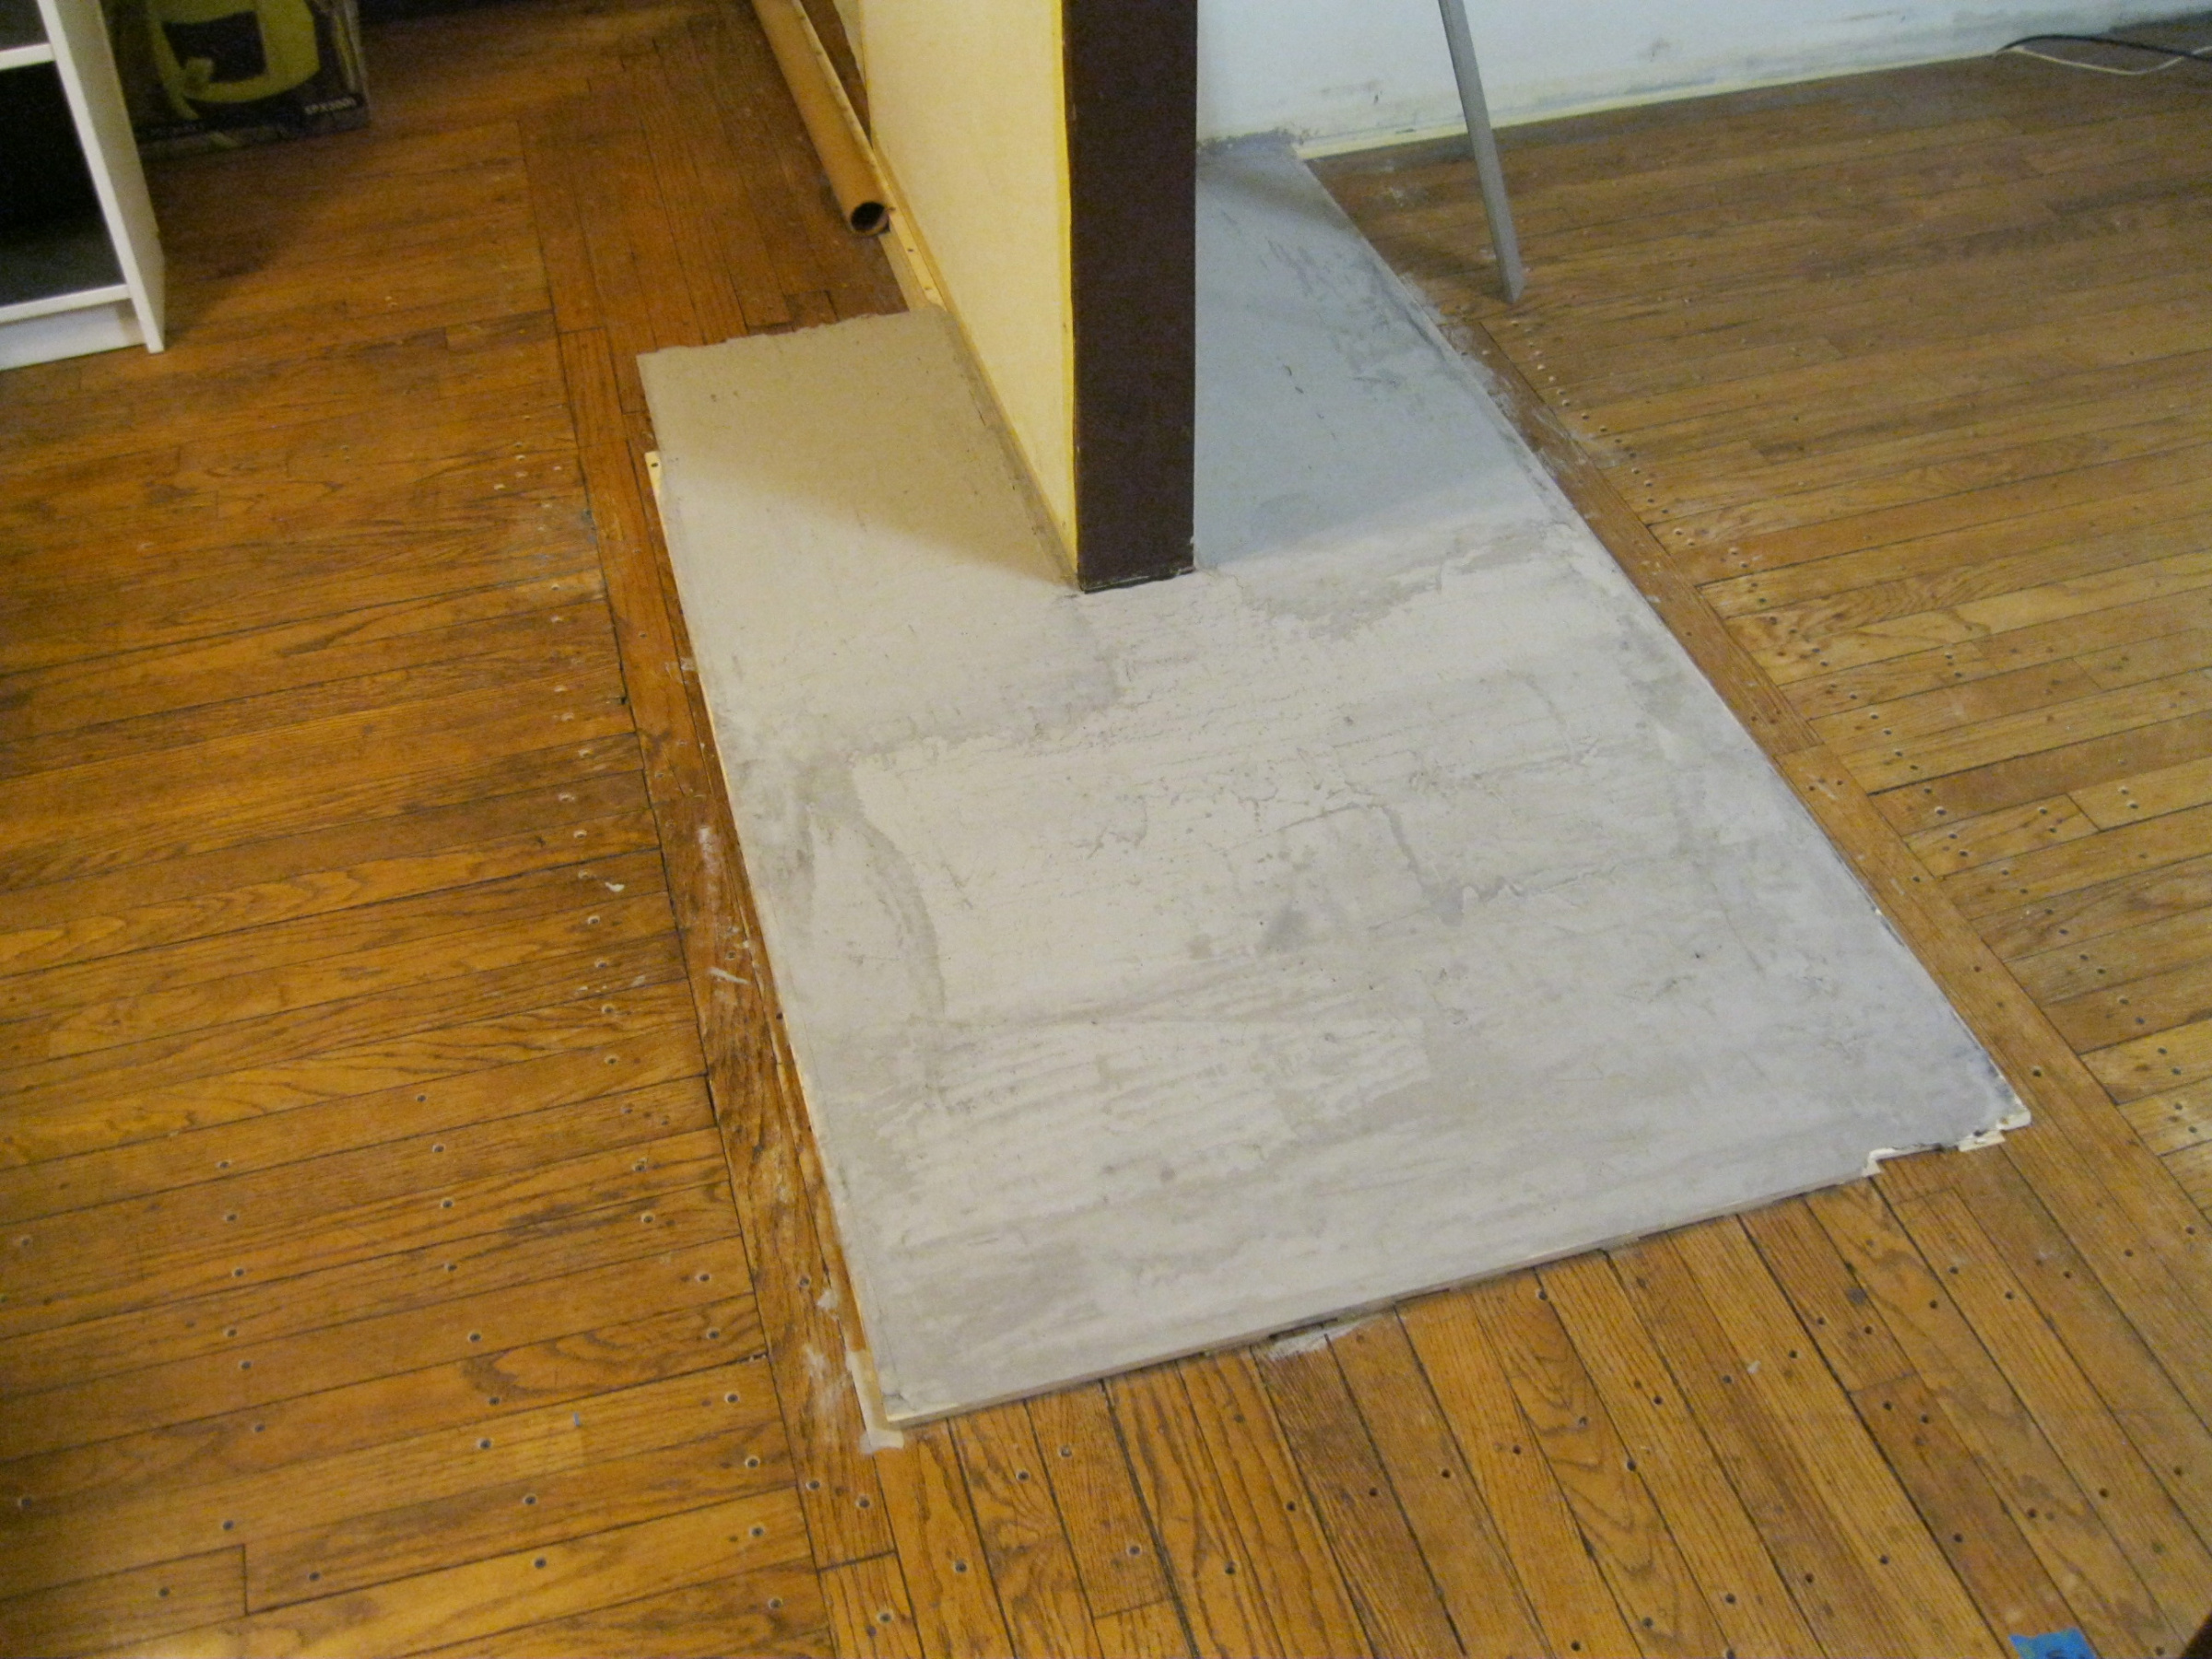 Concrete kitchen floor-1.jpg